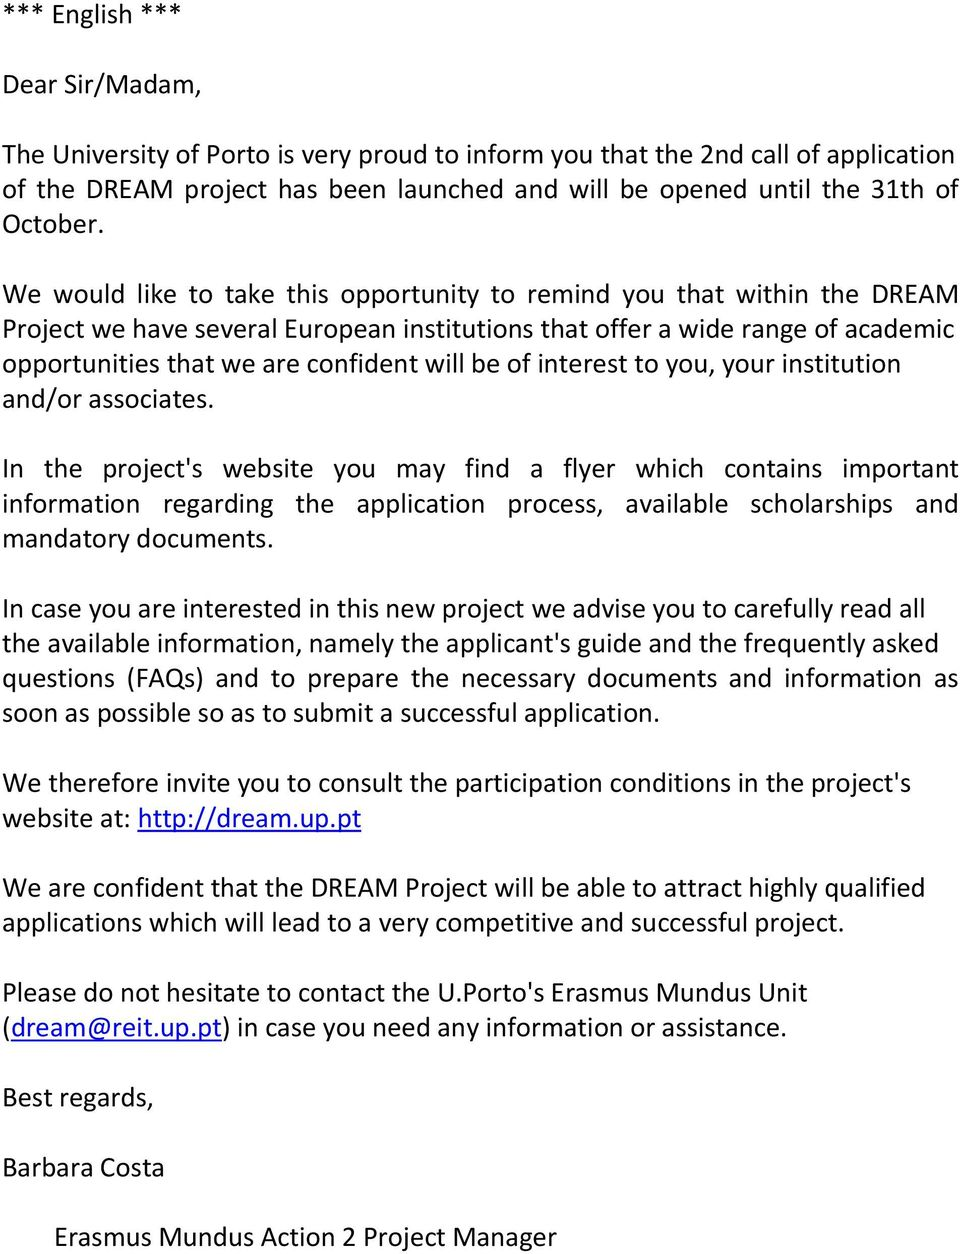 We would like to take this opportunity to remind you that within the DREAM Project we have several European institutions that offer a wide range of academic opportunities that we are confident will